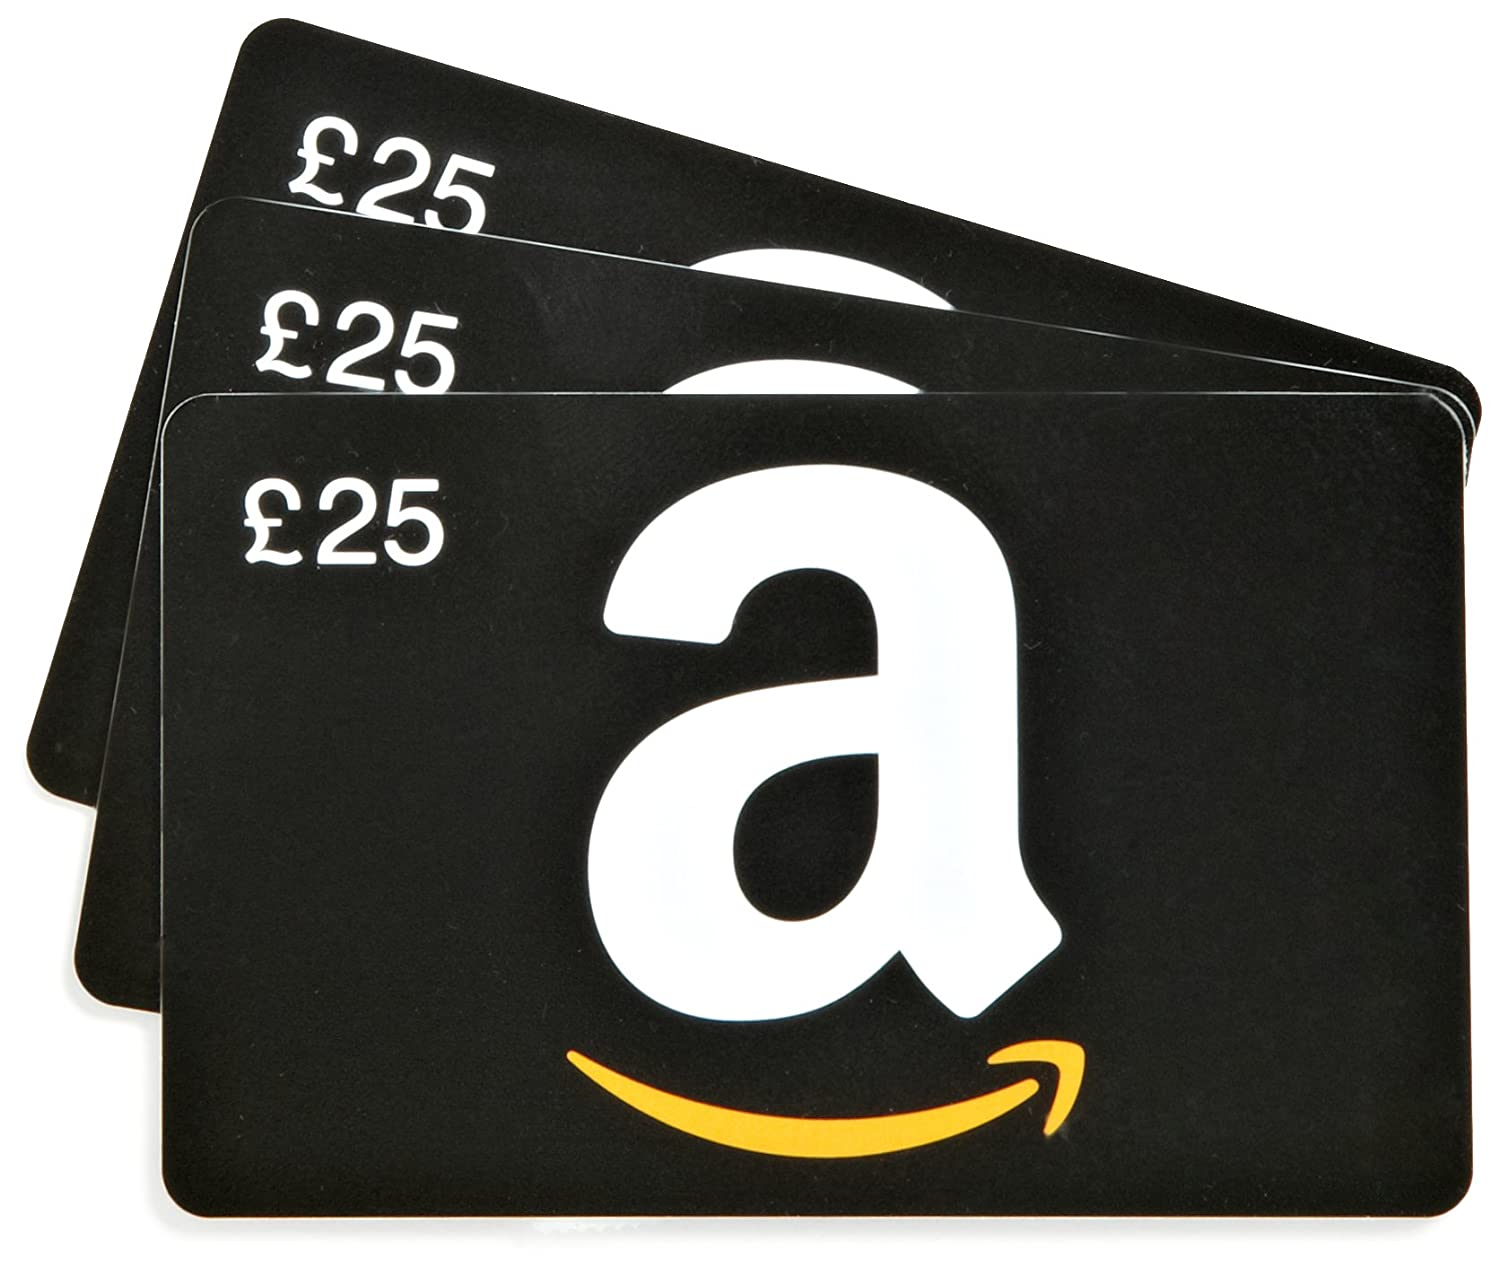 Amazon.co.uk Gift Cards - 3-Pack - FREE One-Day Delivery Amazon EU S.à.r.l.